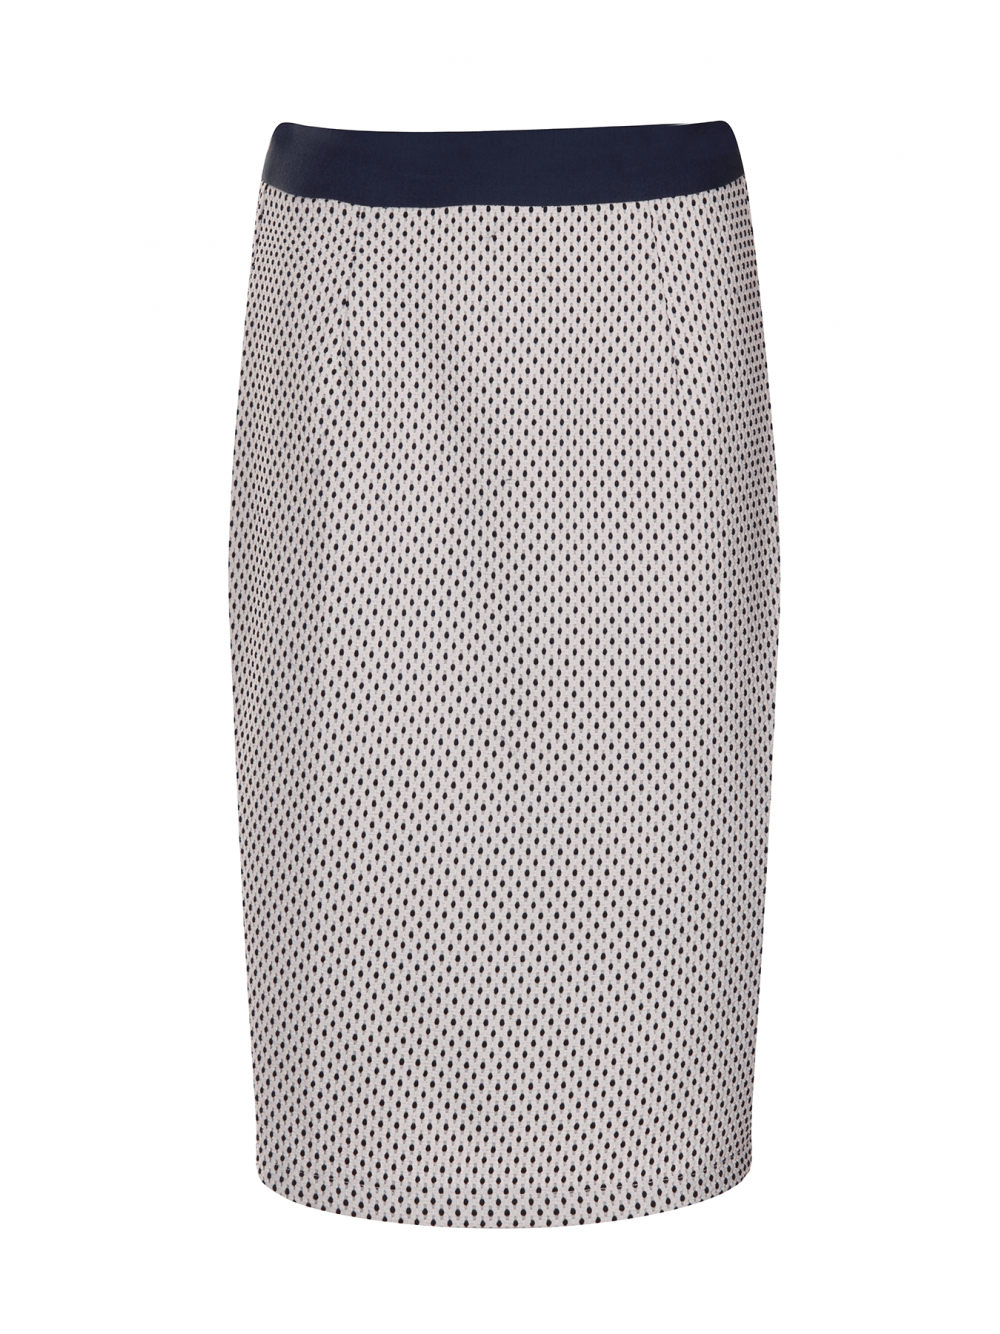 White & Navy Textured Spot Print Pencil Skirt